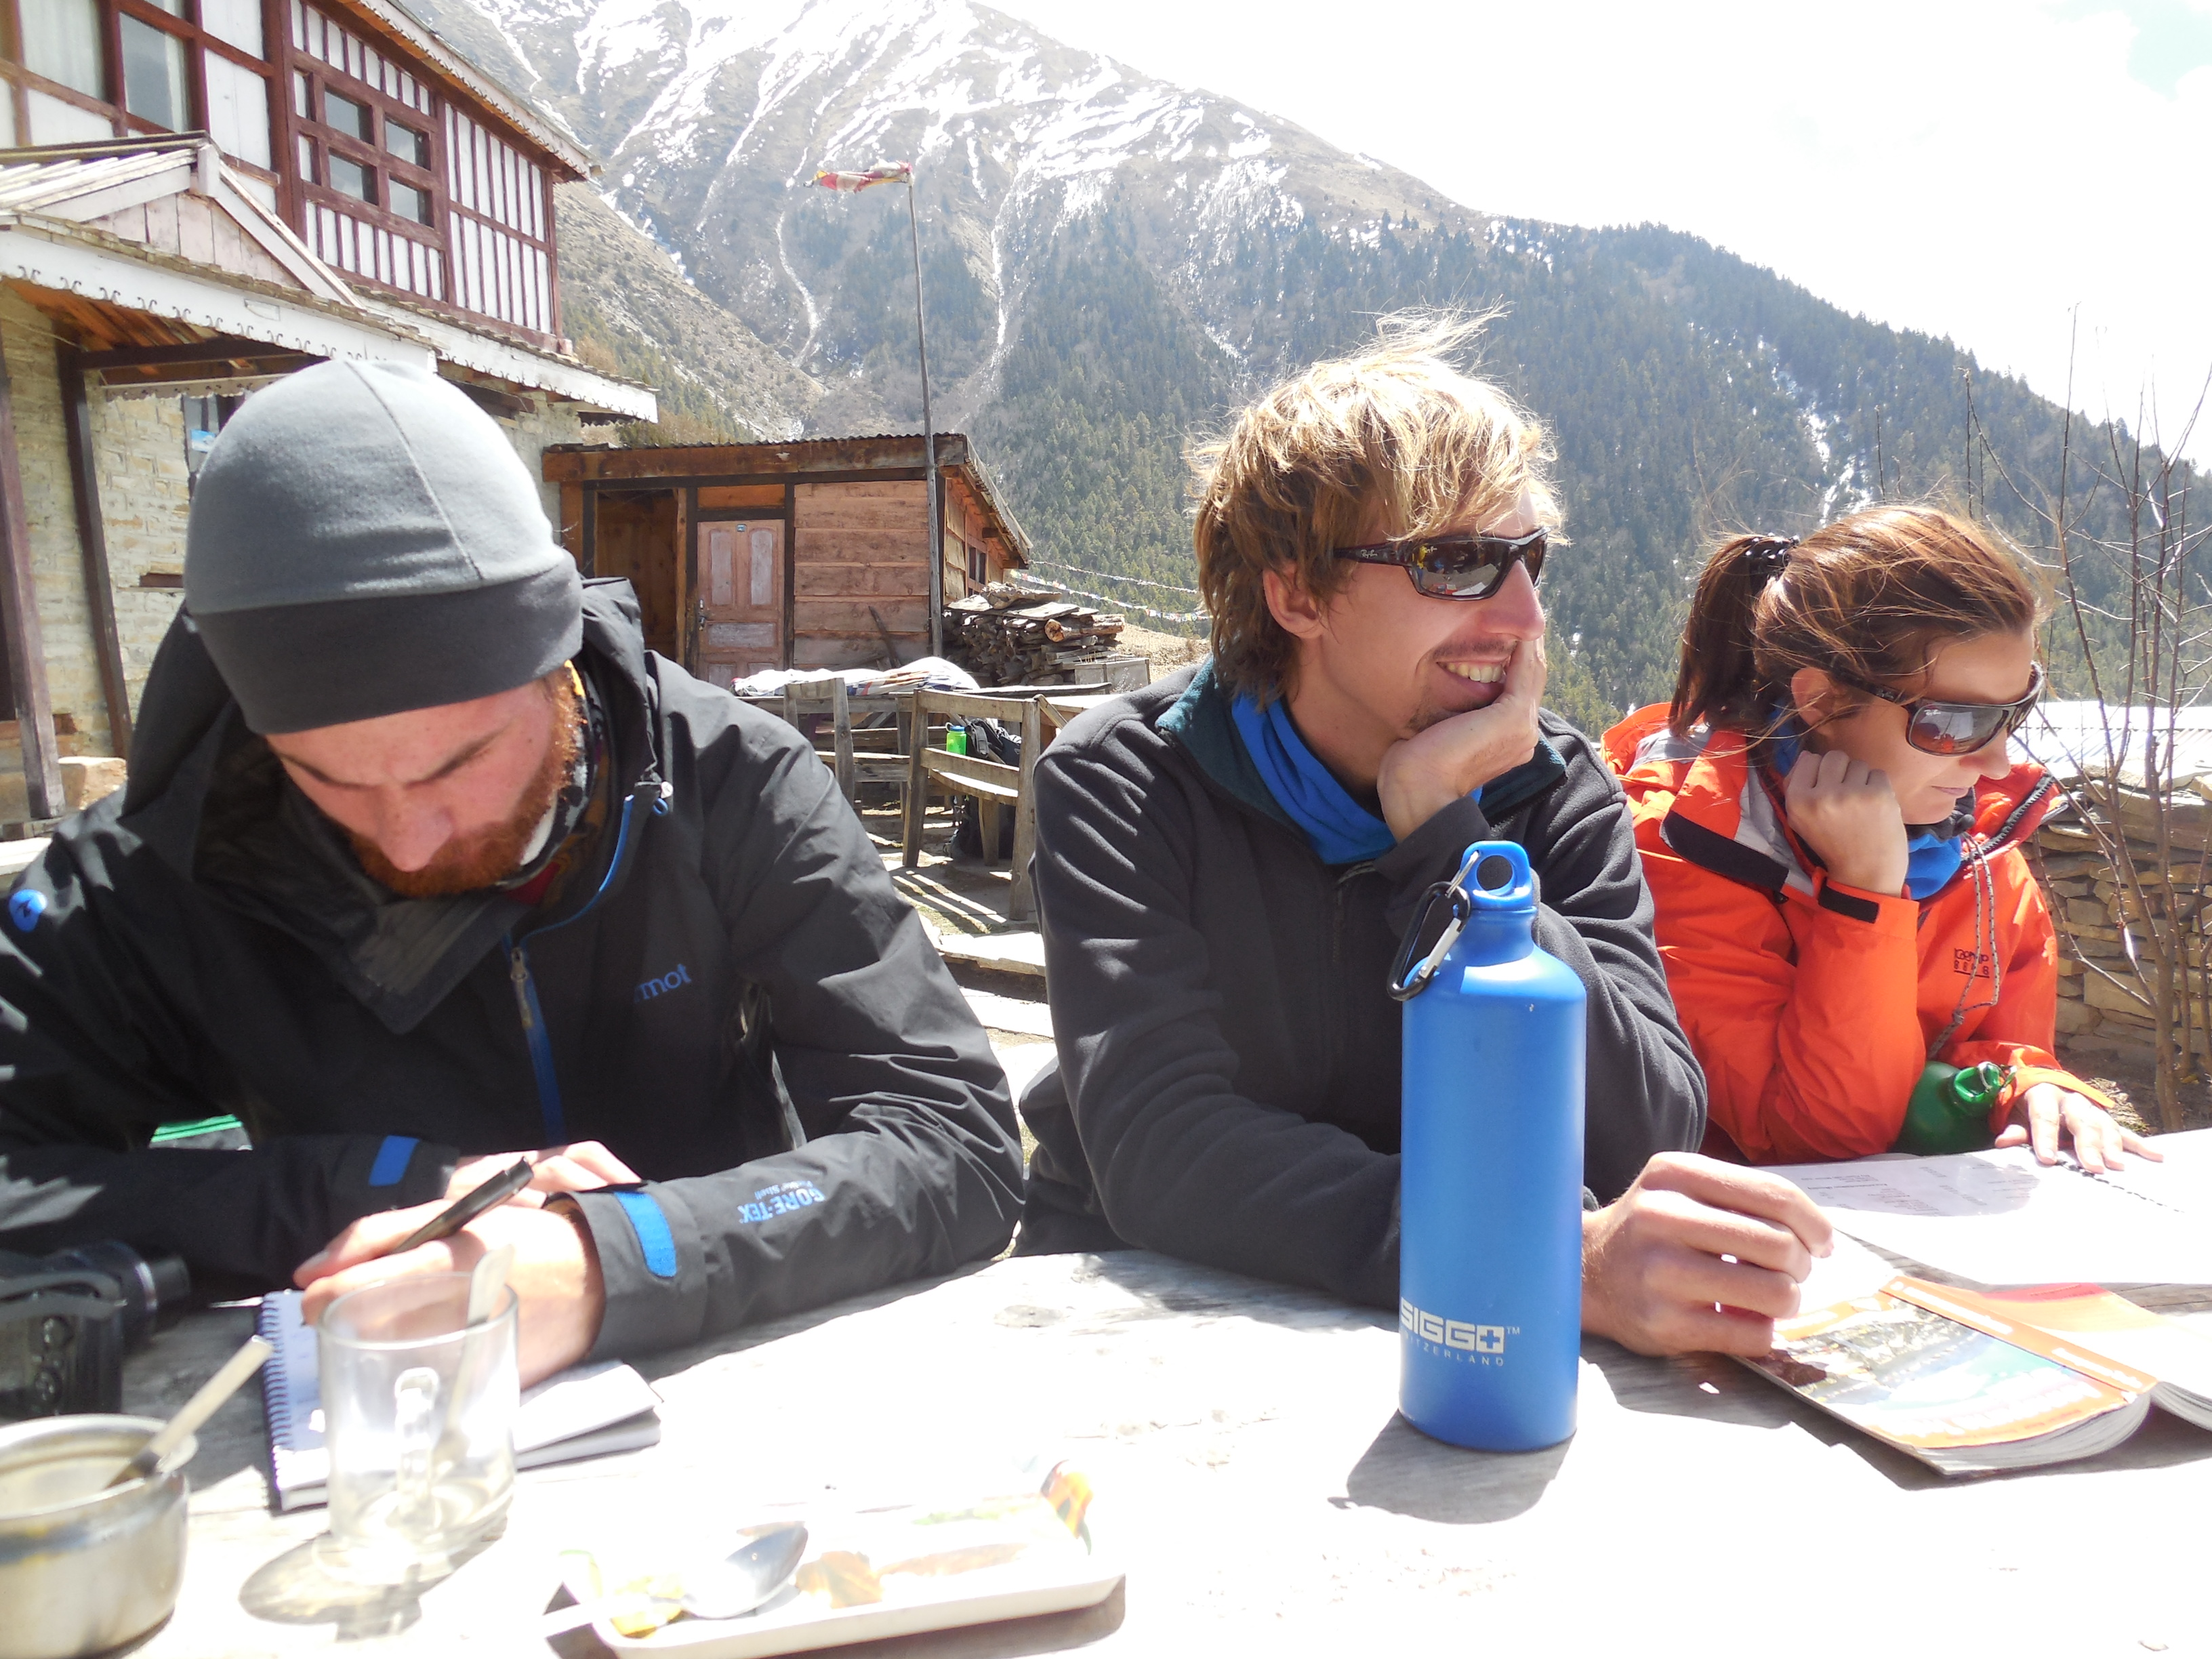 My buddies from that trip. Torge, Eric, Amaia